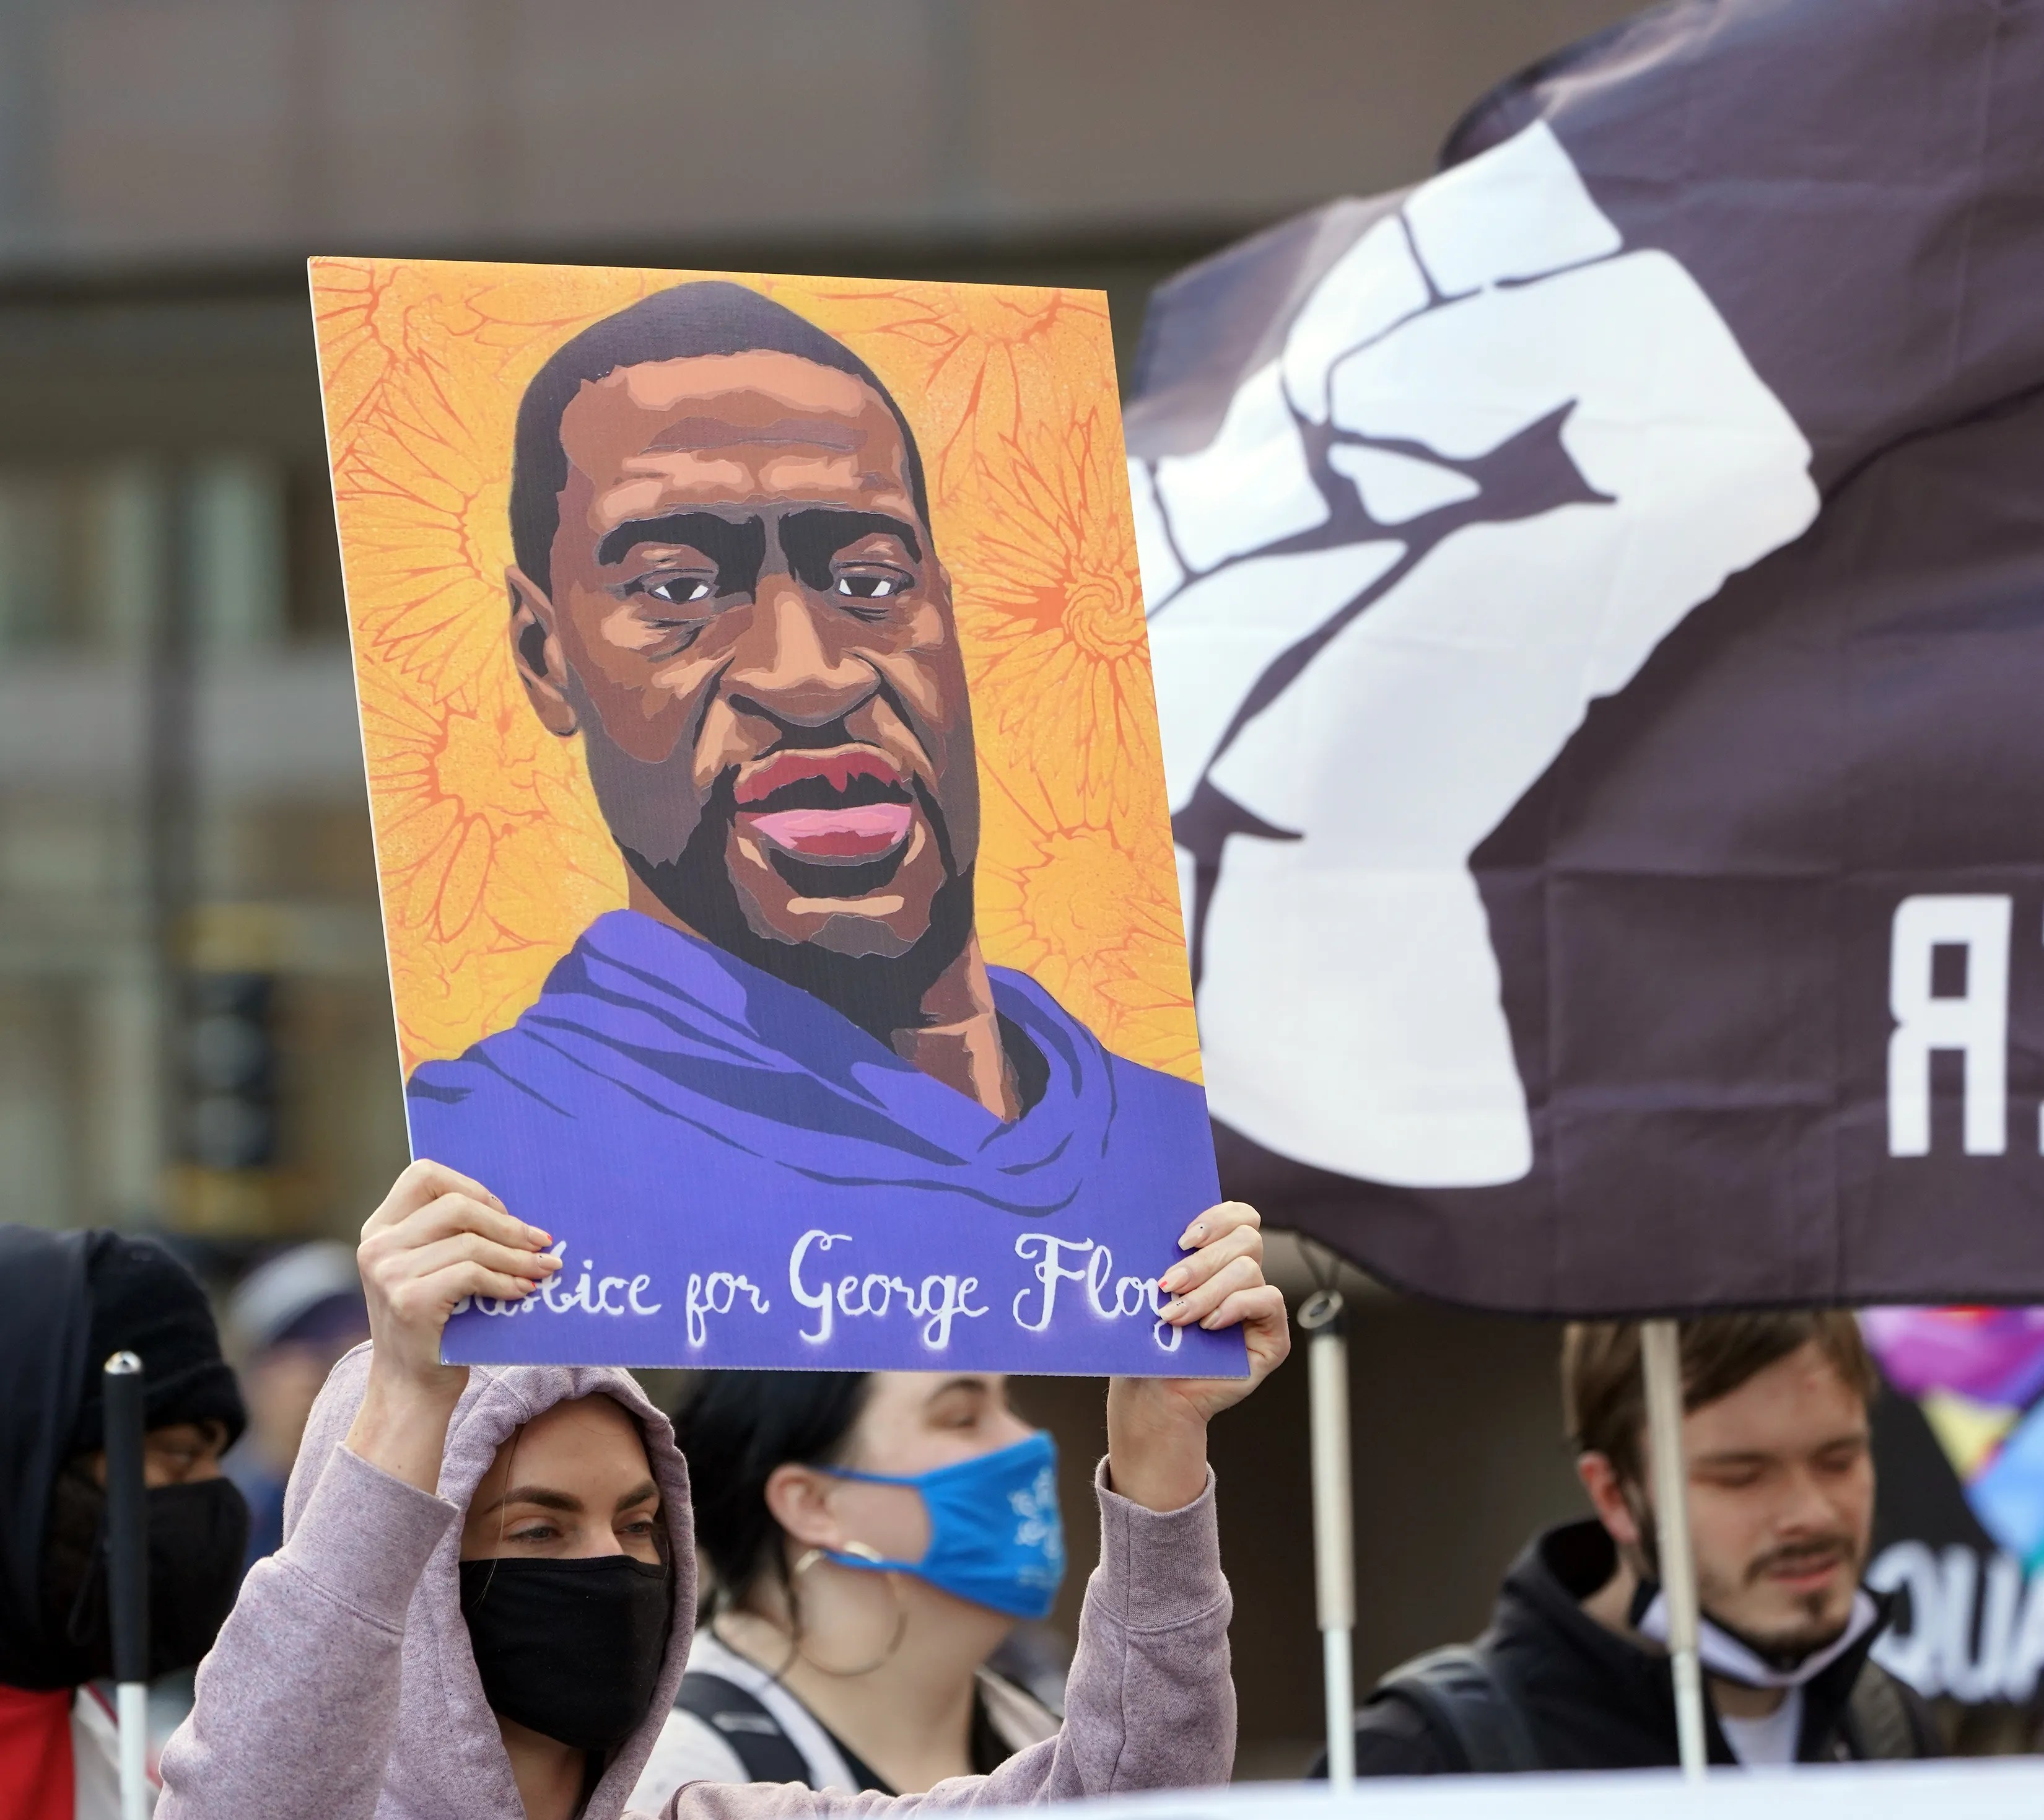 Vanessa Boerhave, 33, of Minneapolis, holds a sign bearing the image of George Floyd at a protest and march held to mark the first day of the trial against former Minneapolis police Officer Derek Chauvin, who is accused of killing Floyd, sparking a wave of protests and riots nationally.